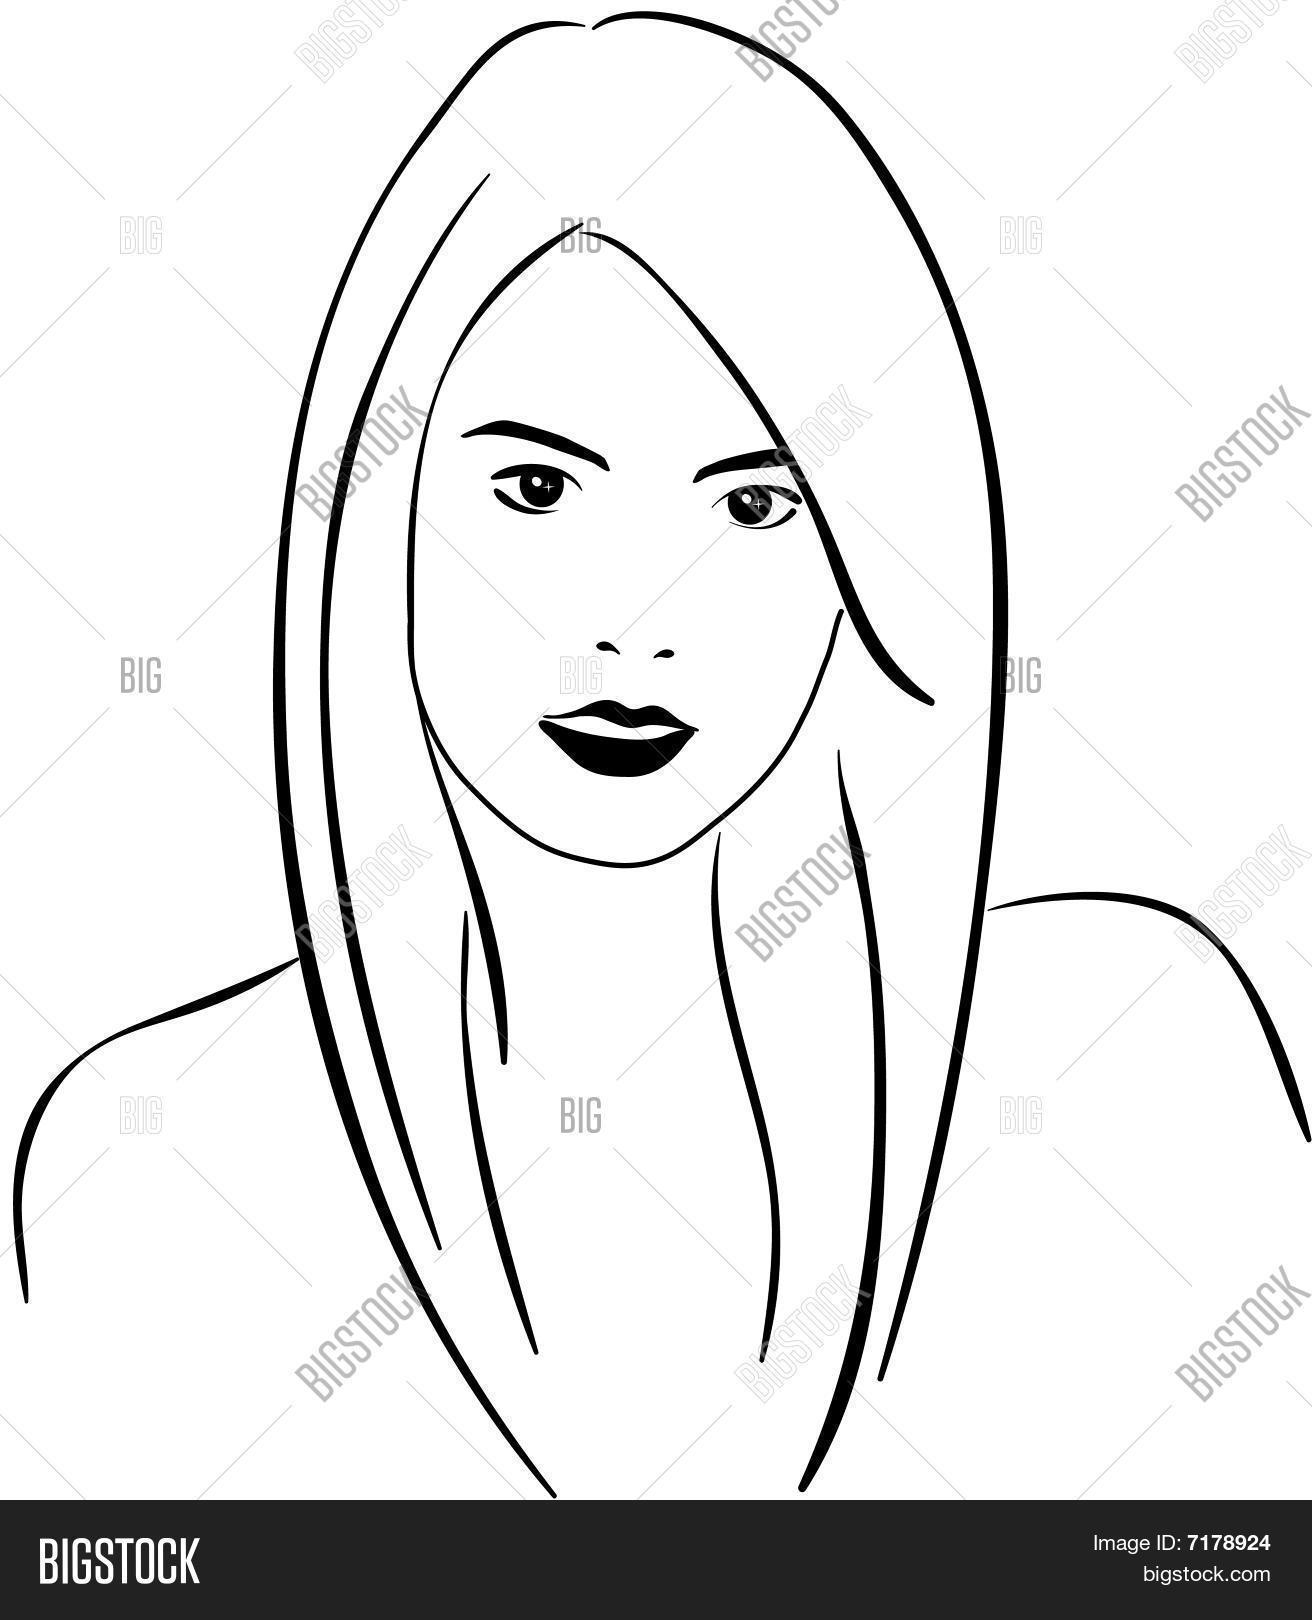 Woman S Face Line Drawing : Woman face line art vector photo bigstock